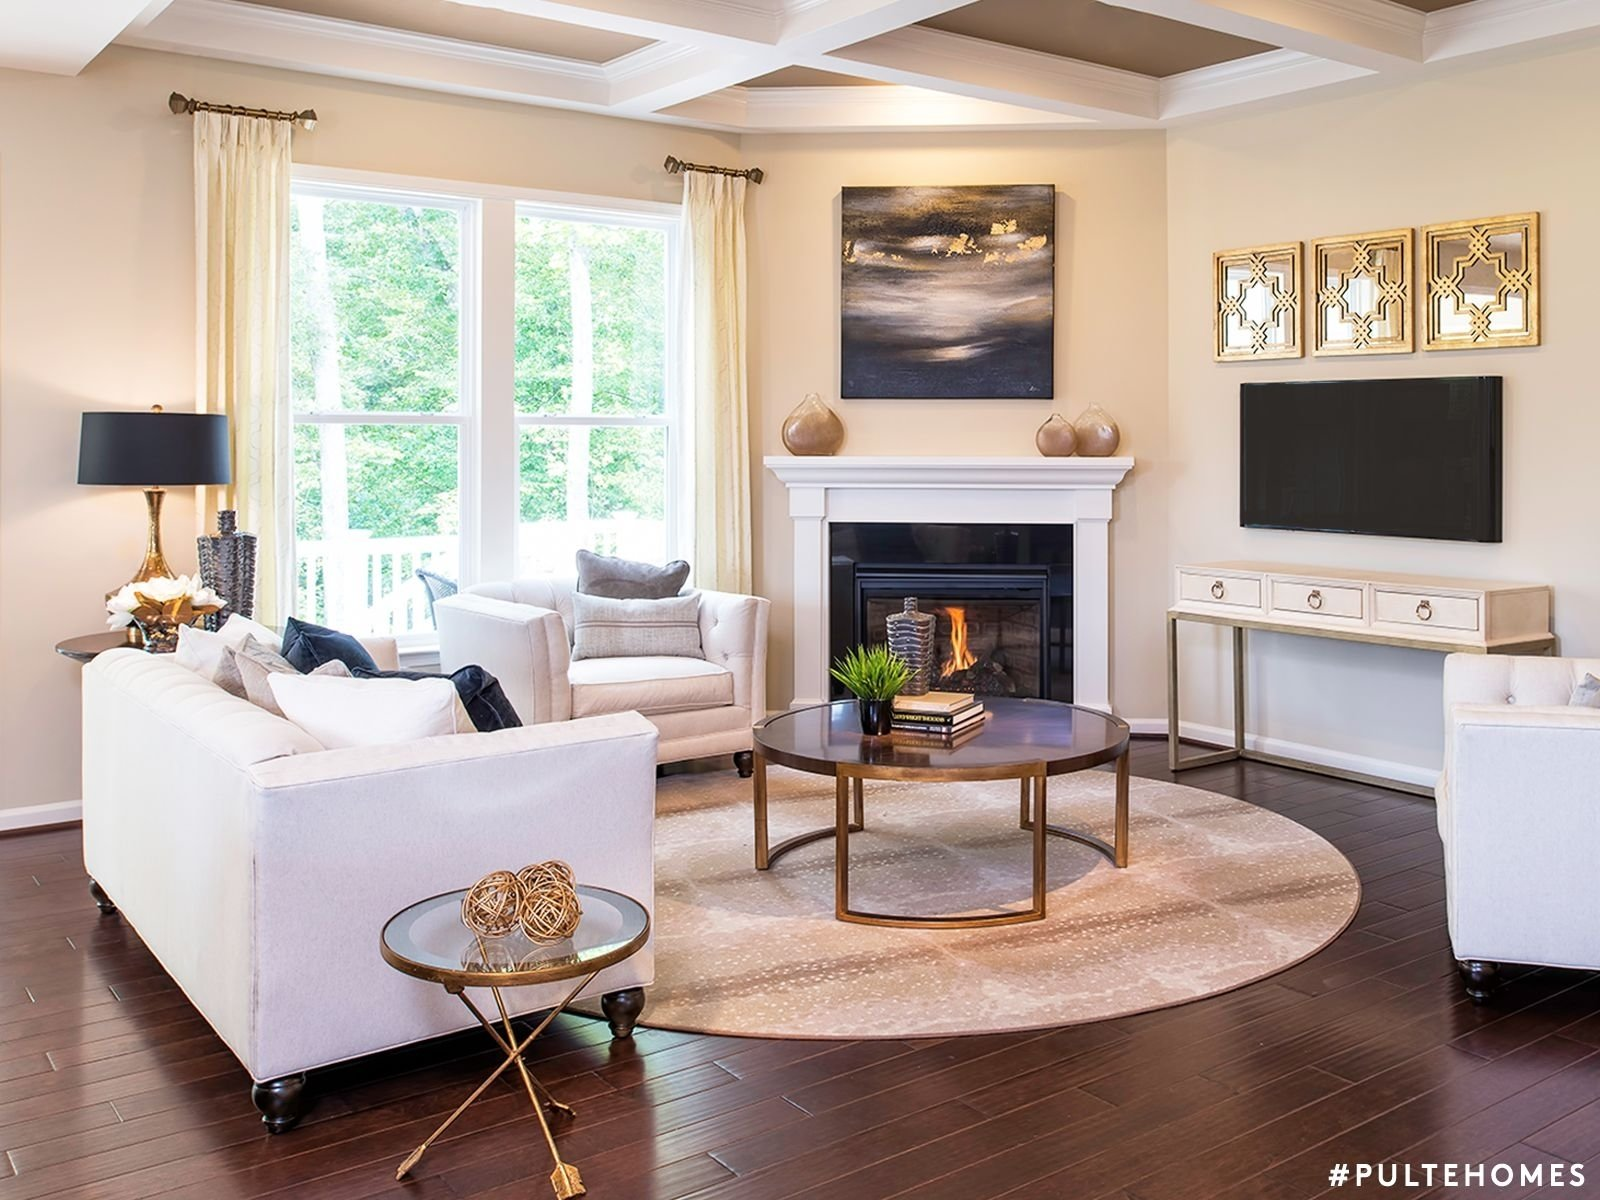 10 Lovely Living Room With Fireplace Ideas 27 stunning fireplace tile ideas for your home round rugs modern 2020